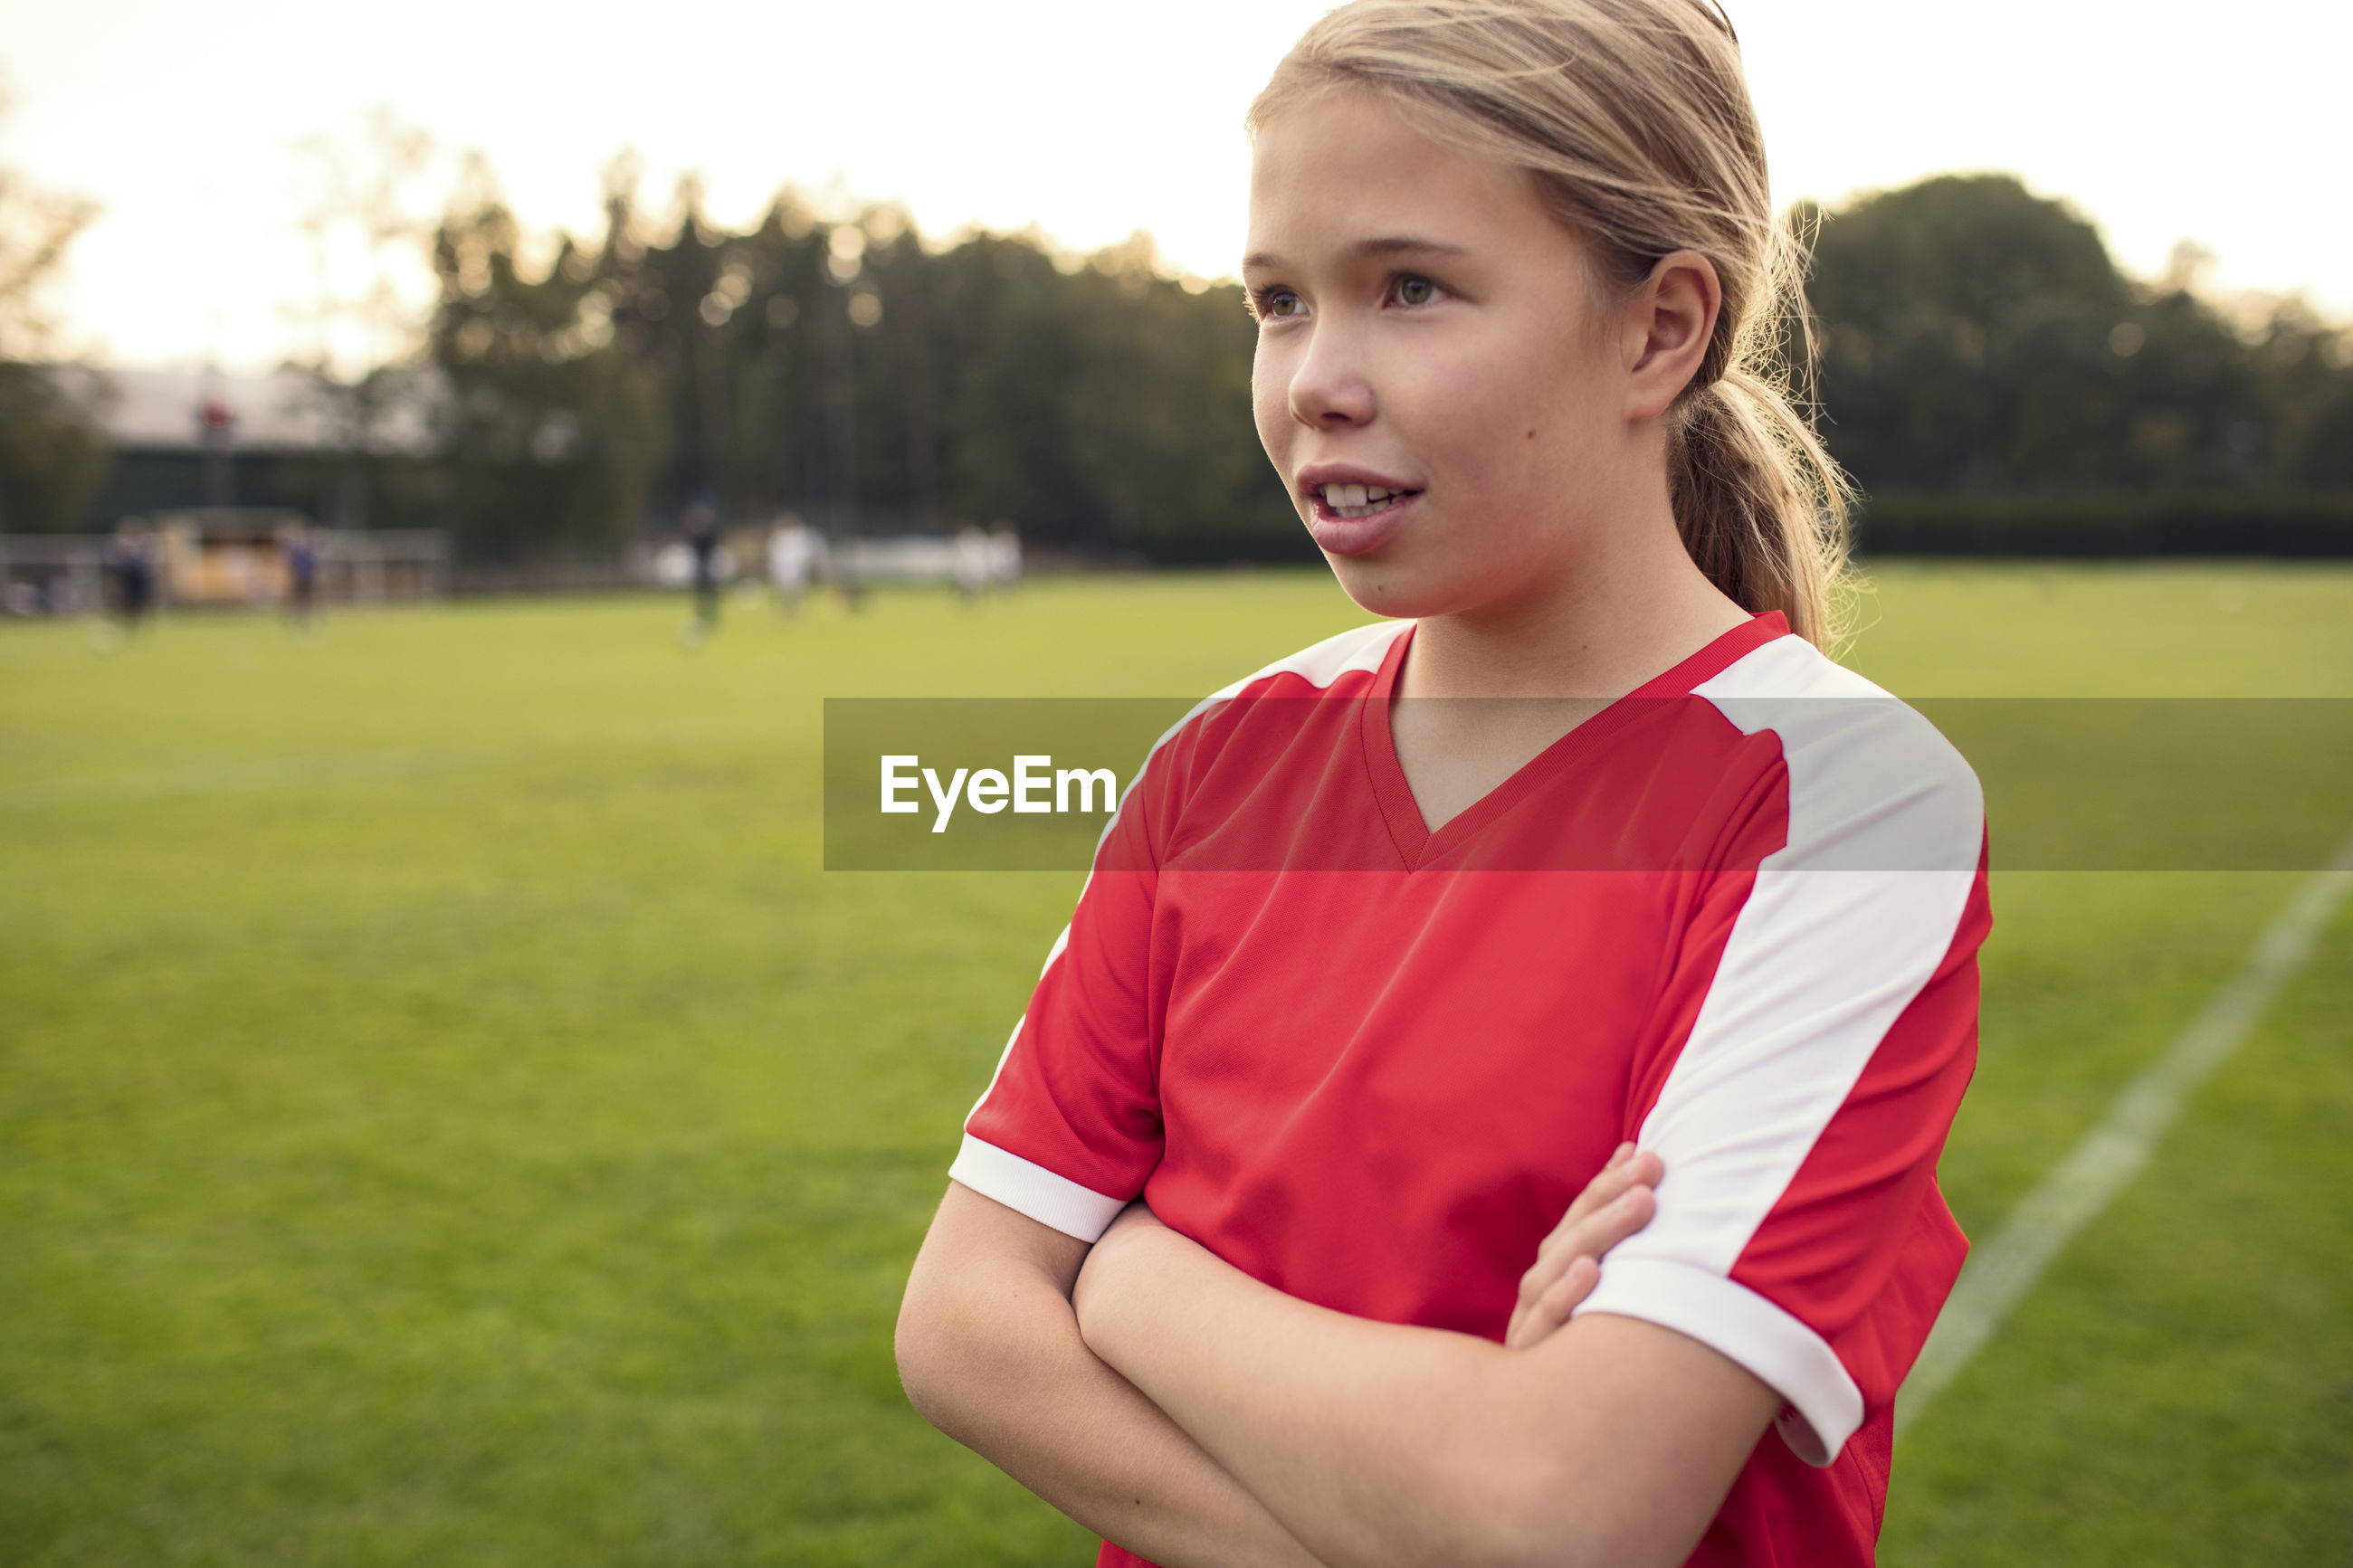 PORTRAIT OF GIRL STANDING ON FIELD AT PARK